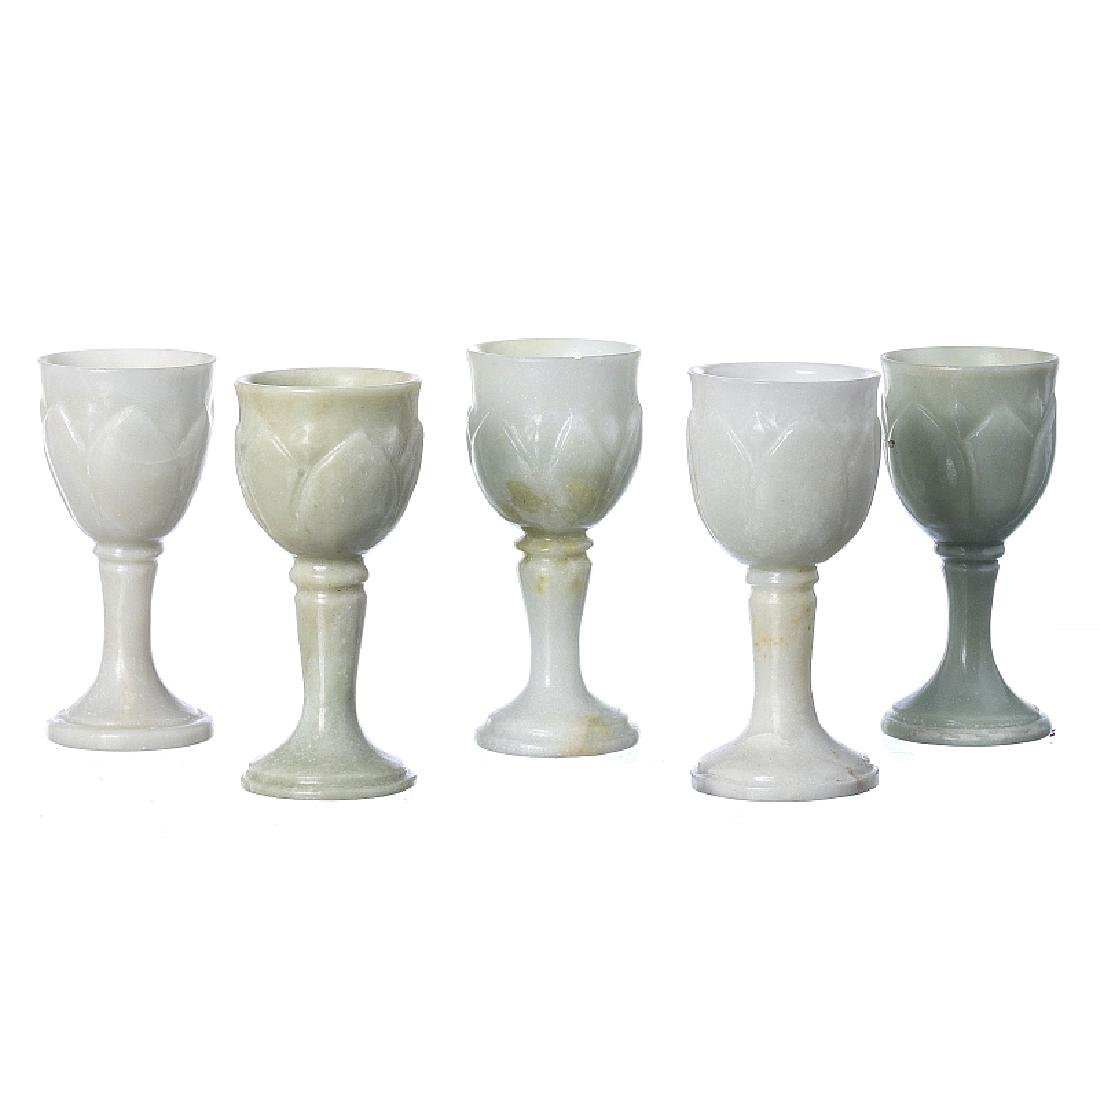 Five cups in jadeite